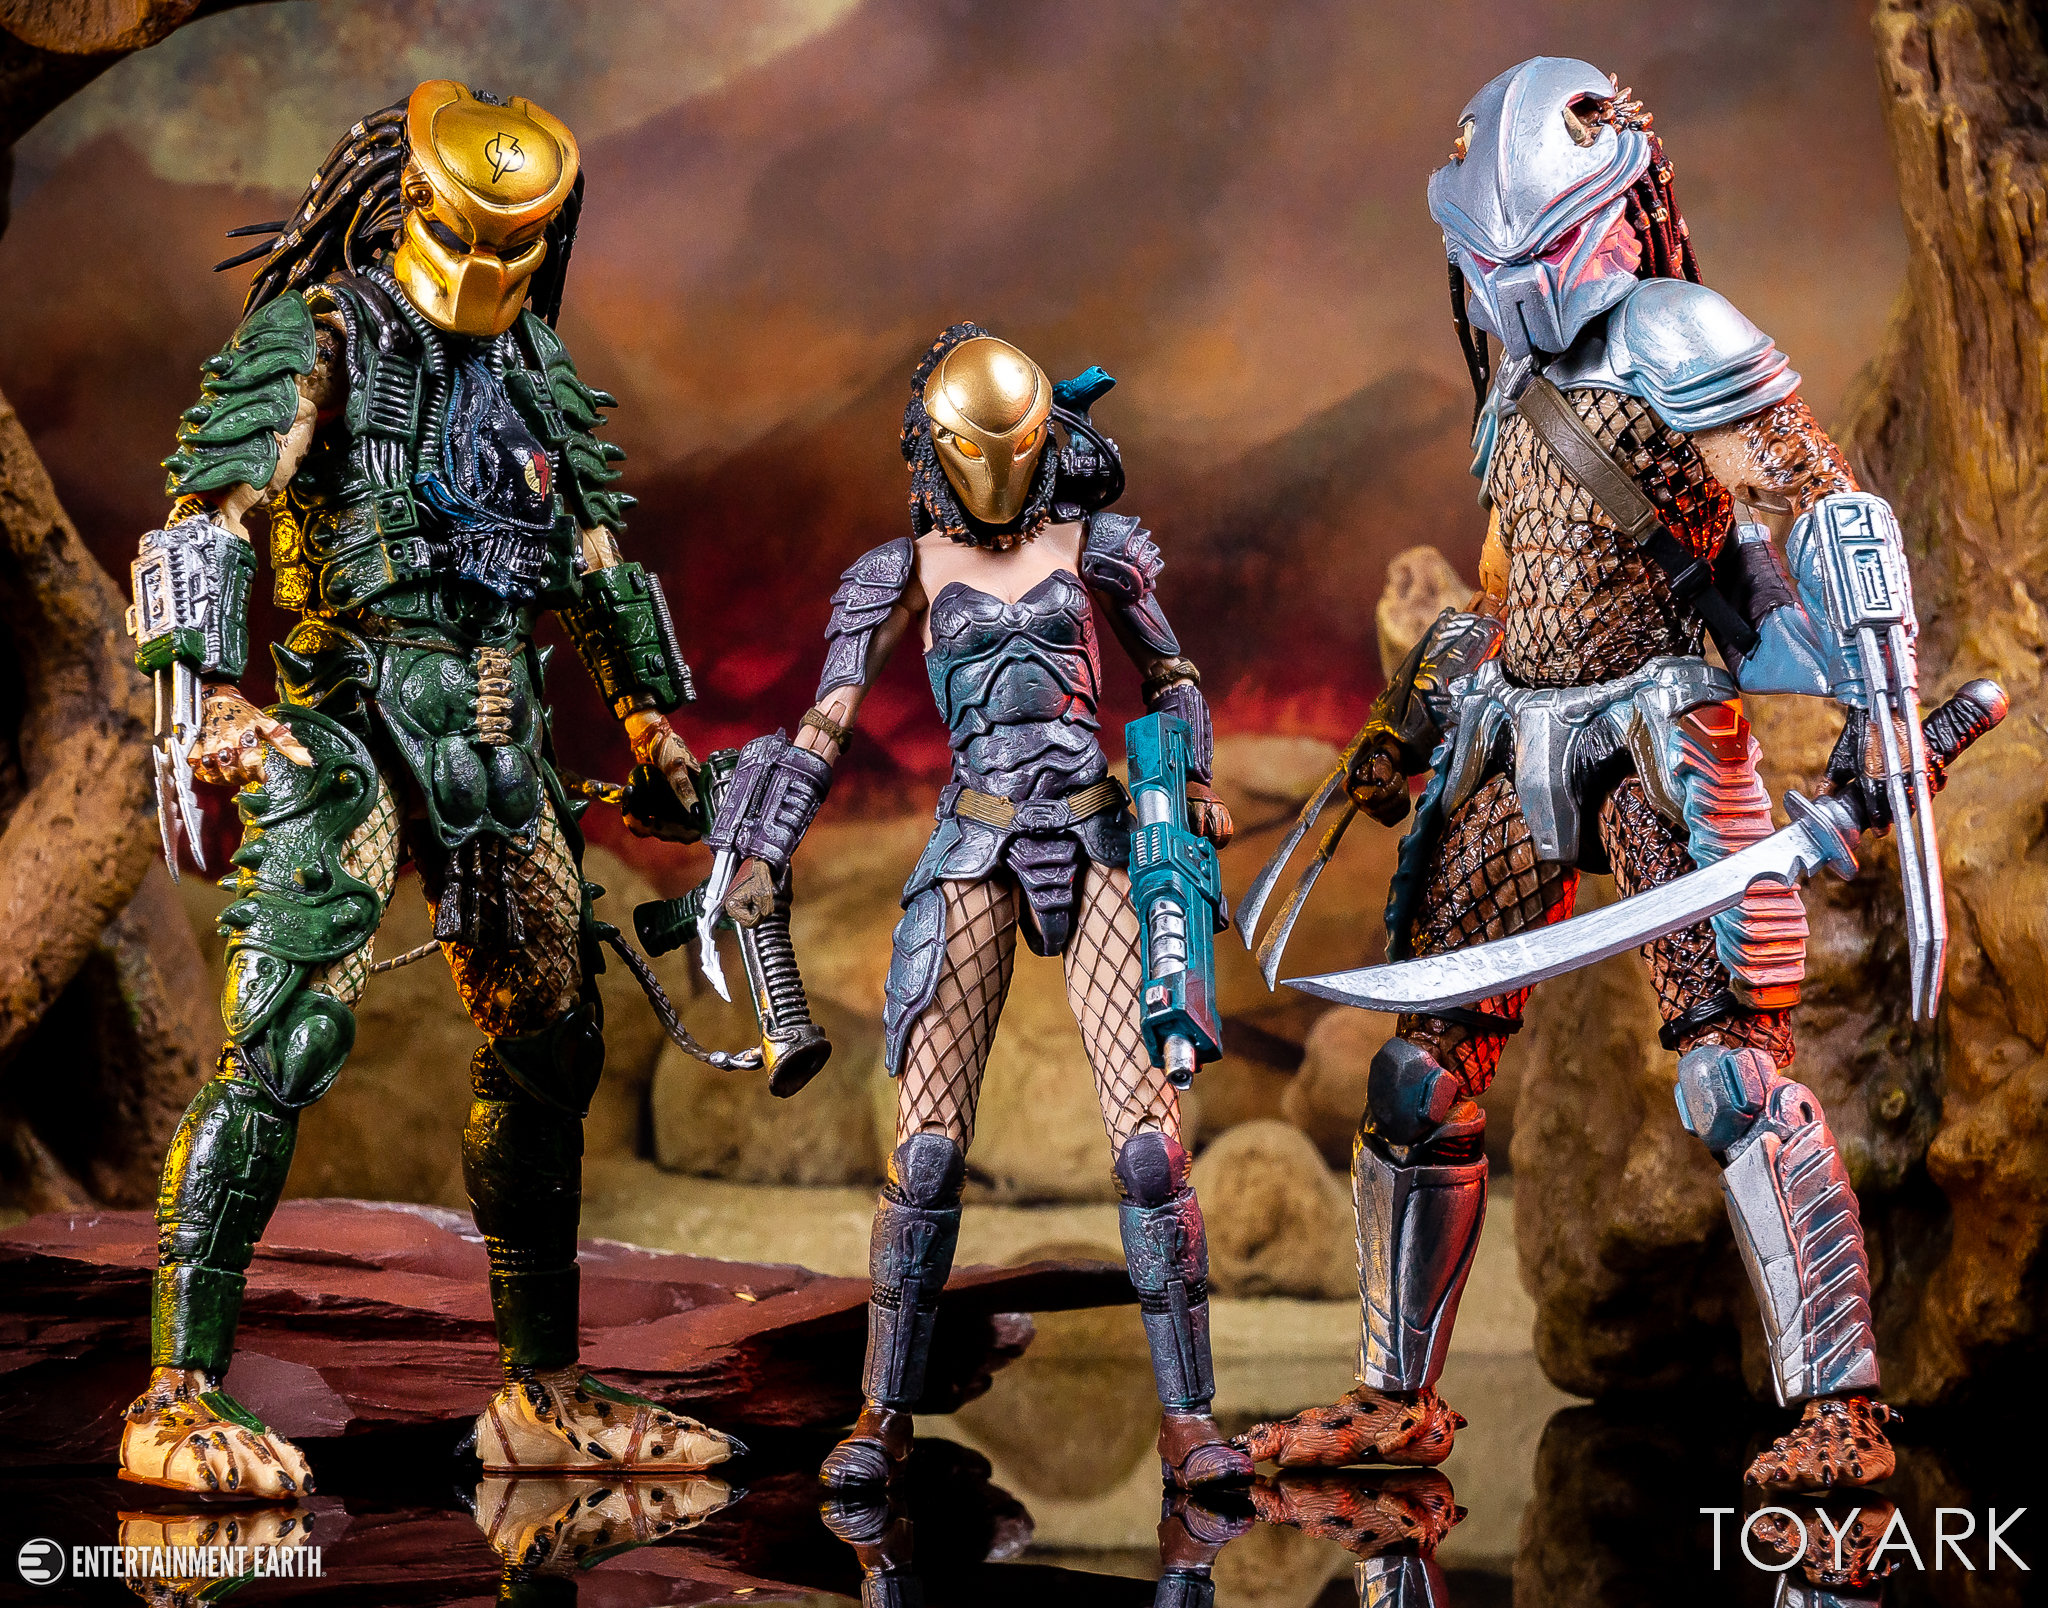 https://news.toyark.com/wp-content/uploads/sites/4/2019/01/Predator-NECA-Series-18-Figures-068.jpg